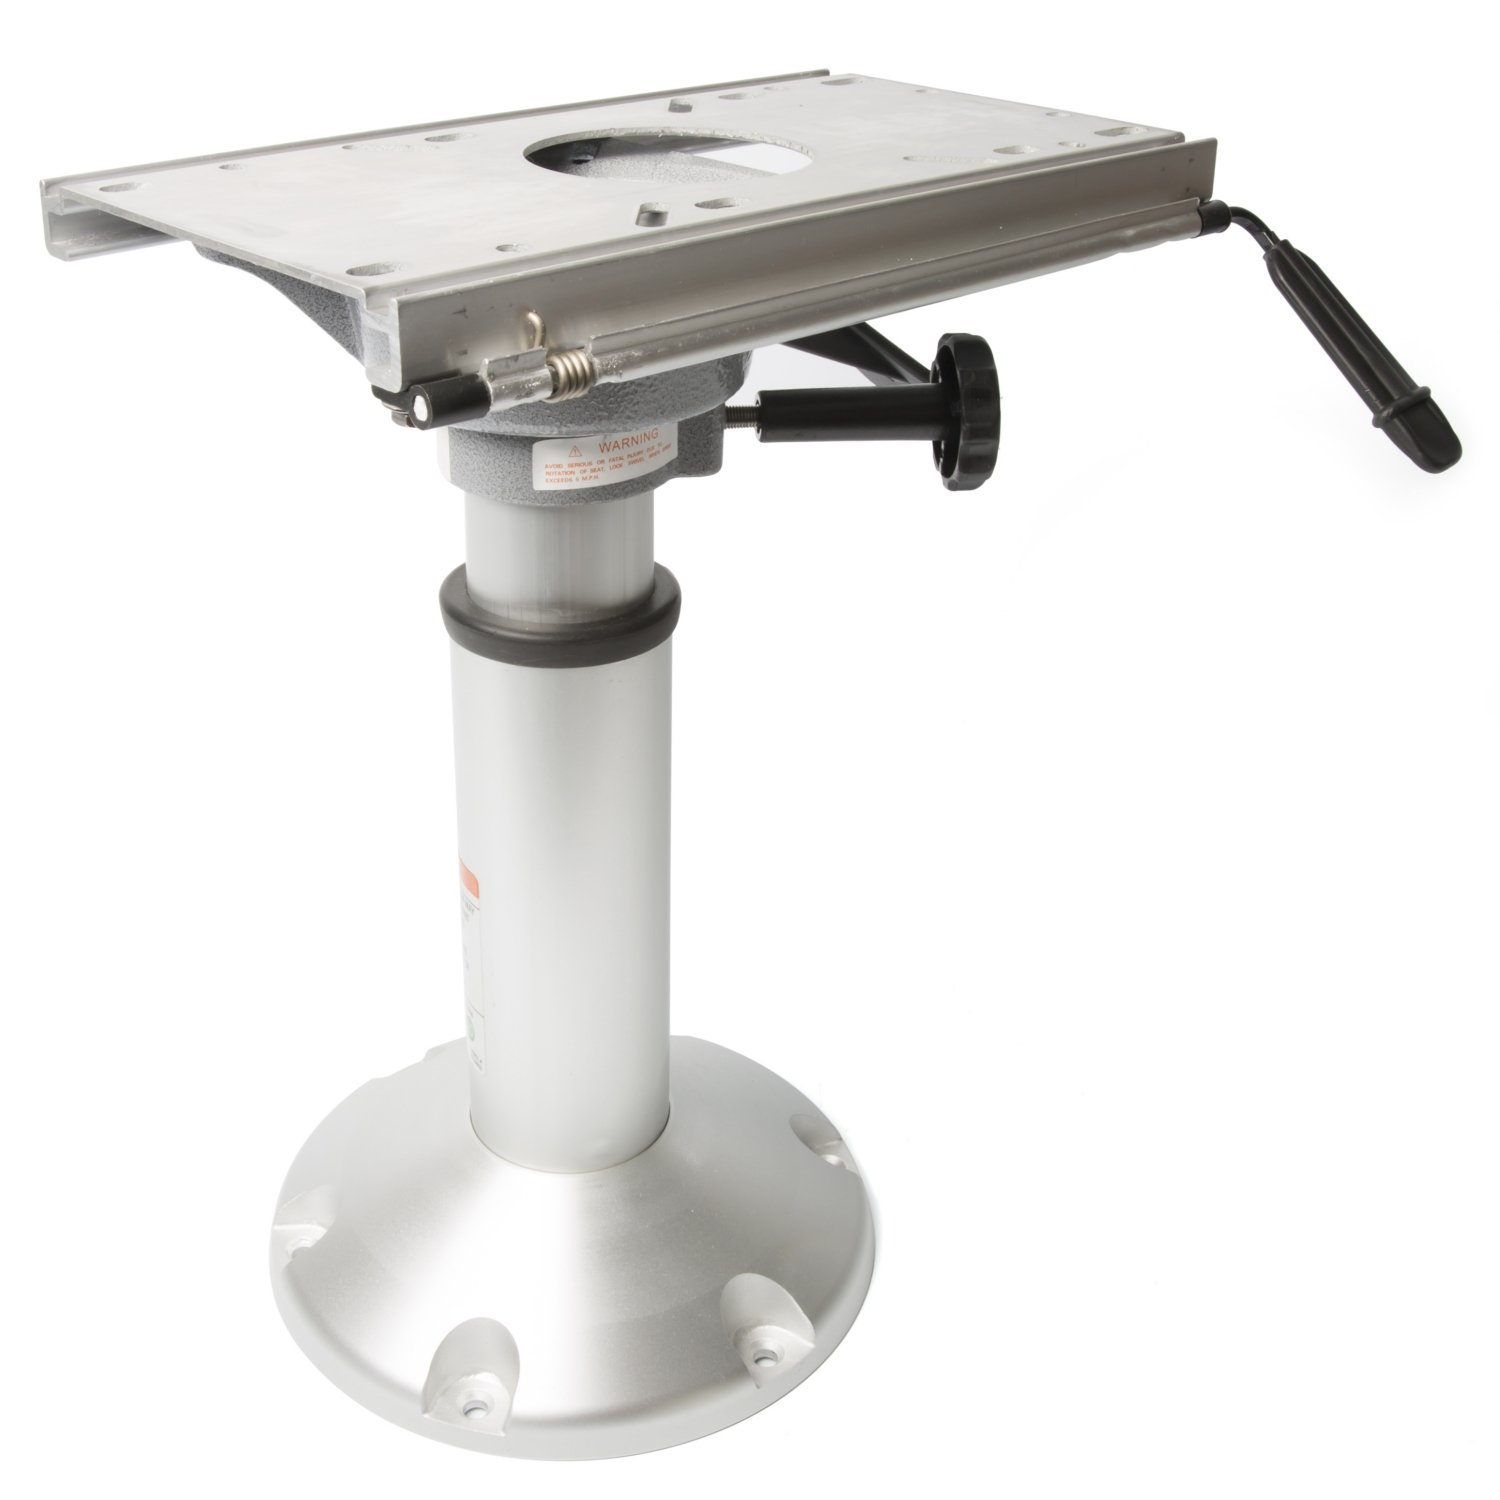 SPRINGFIELD Mainstray Adjustable Series Non-Removable Pedestal